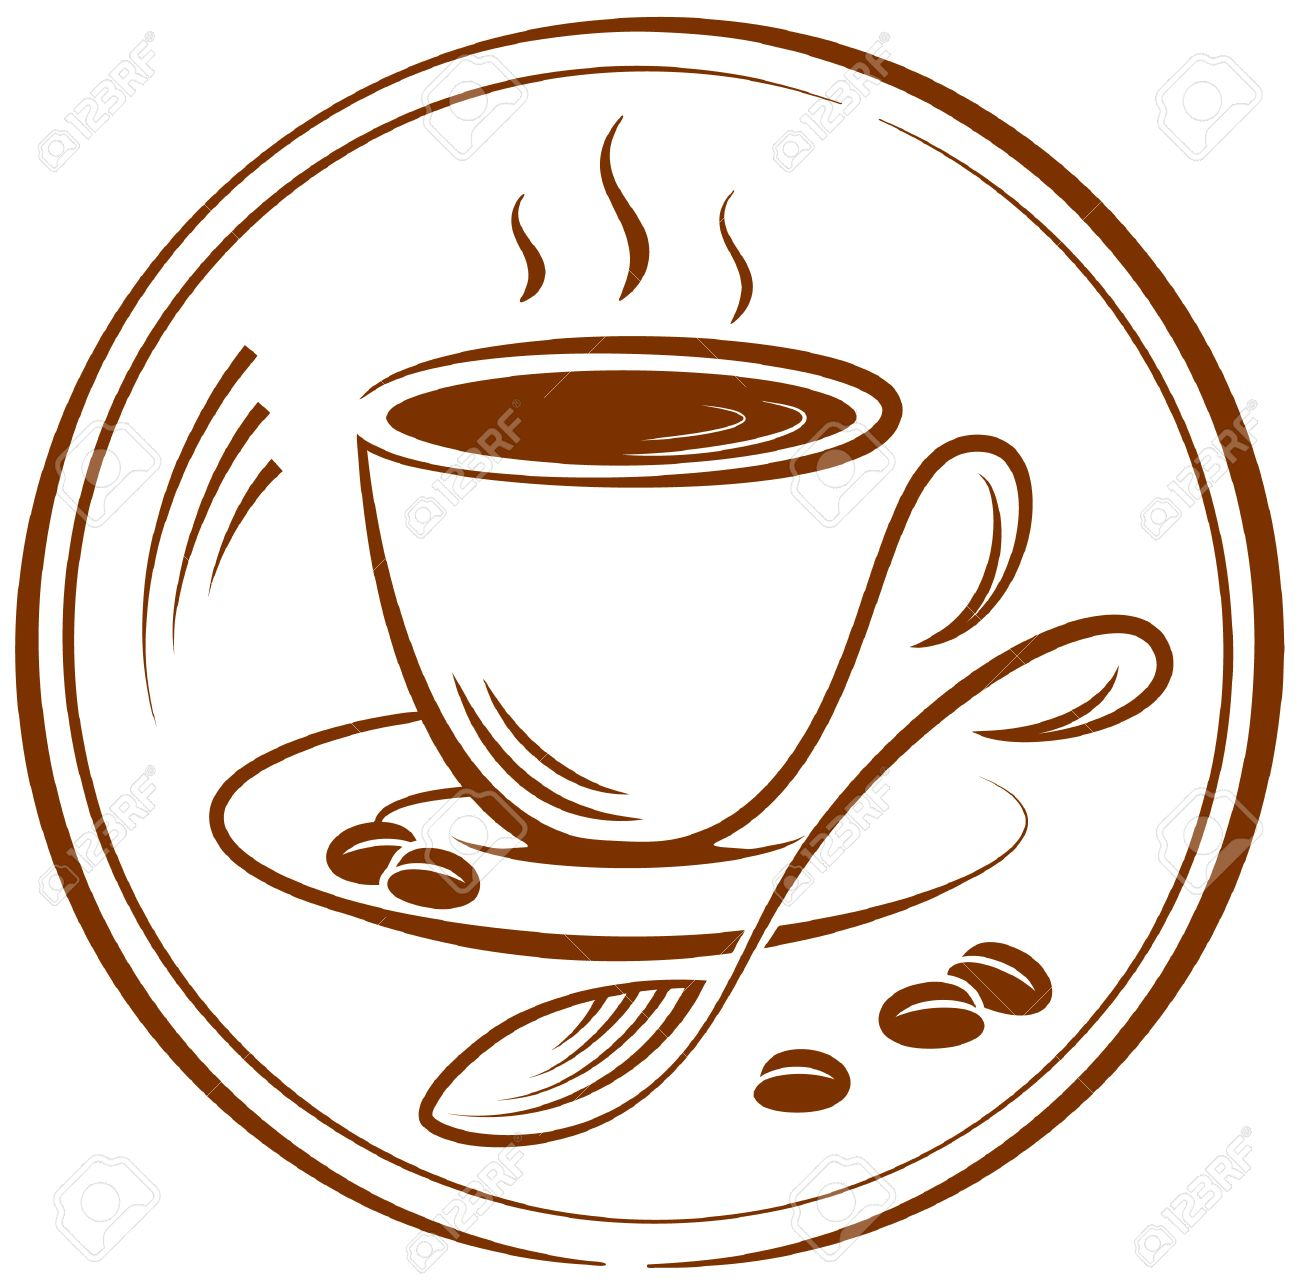 the pictogram with the image of a cup of coffee vector illustration rh 123rf com coffee vector files coffee vector free download